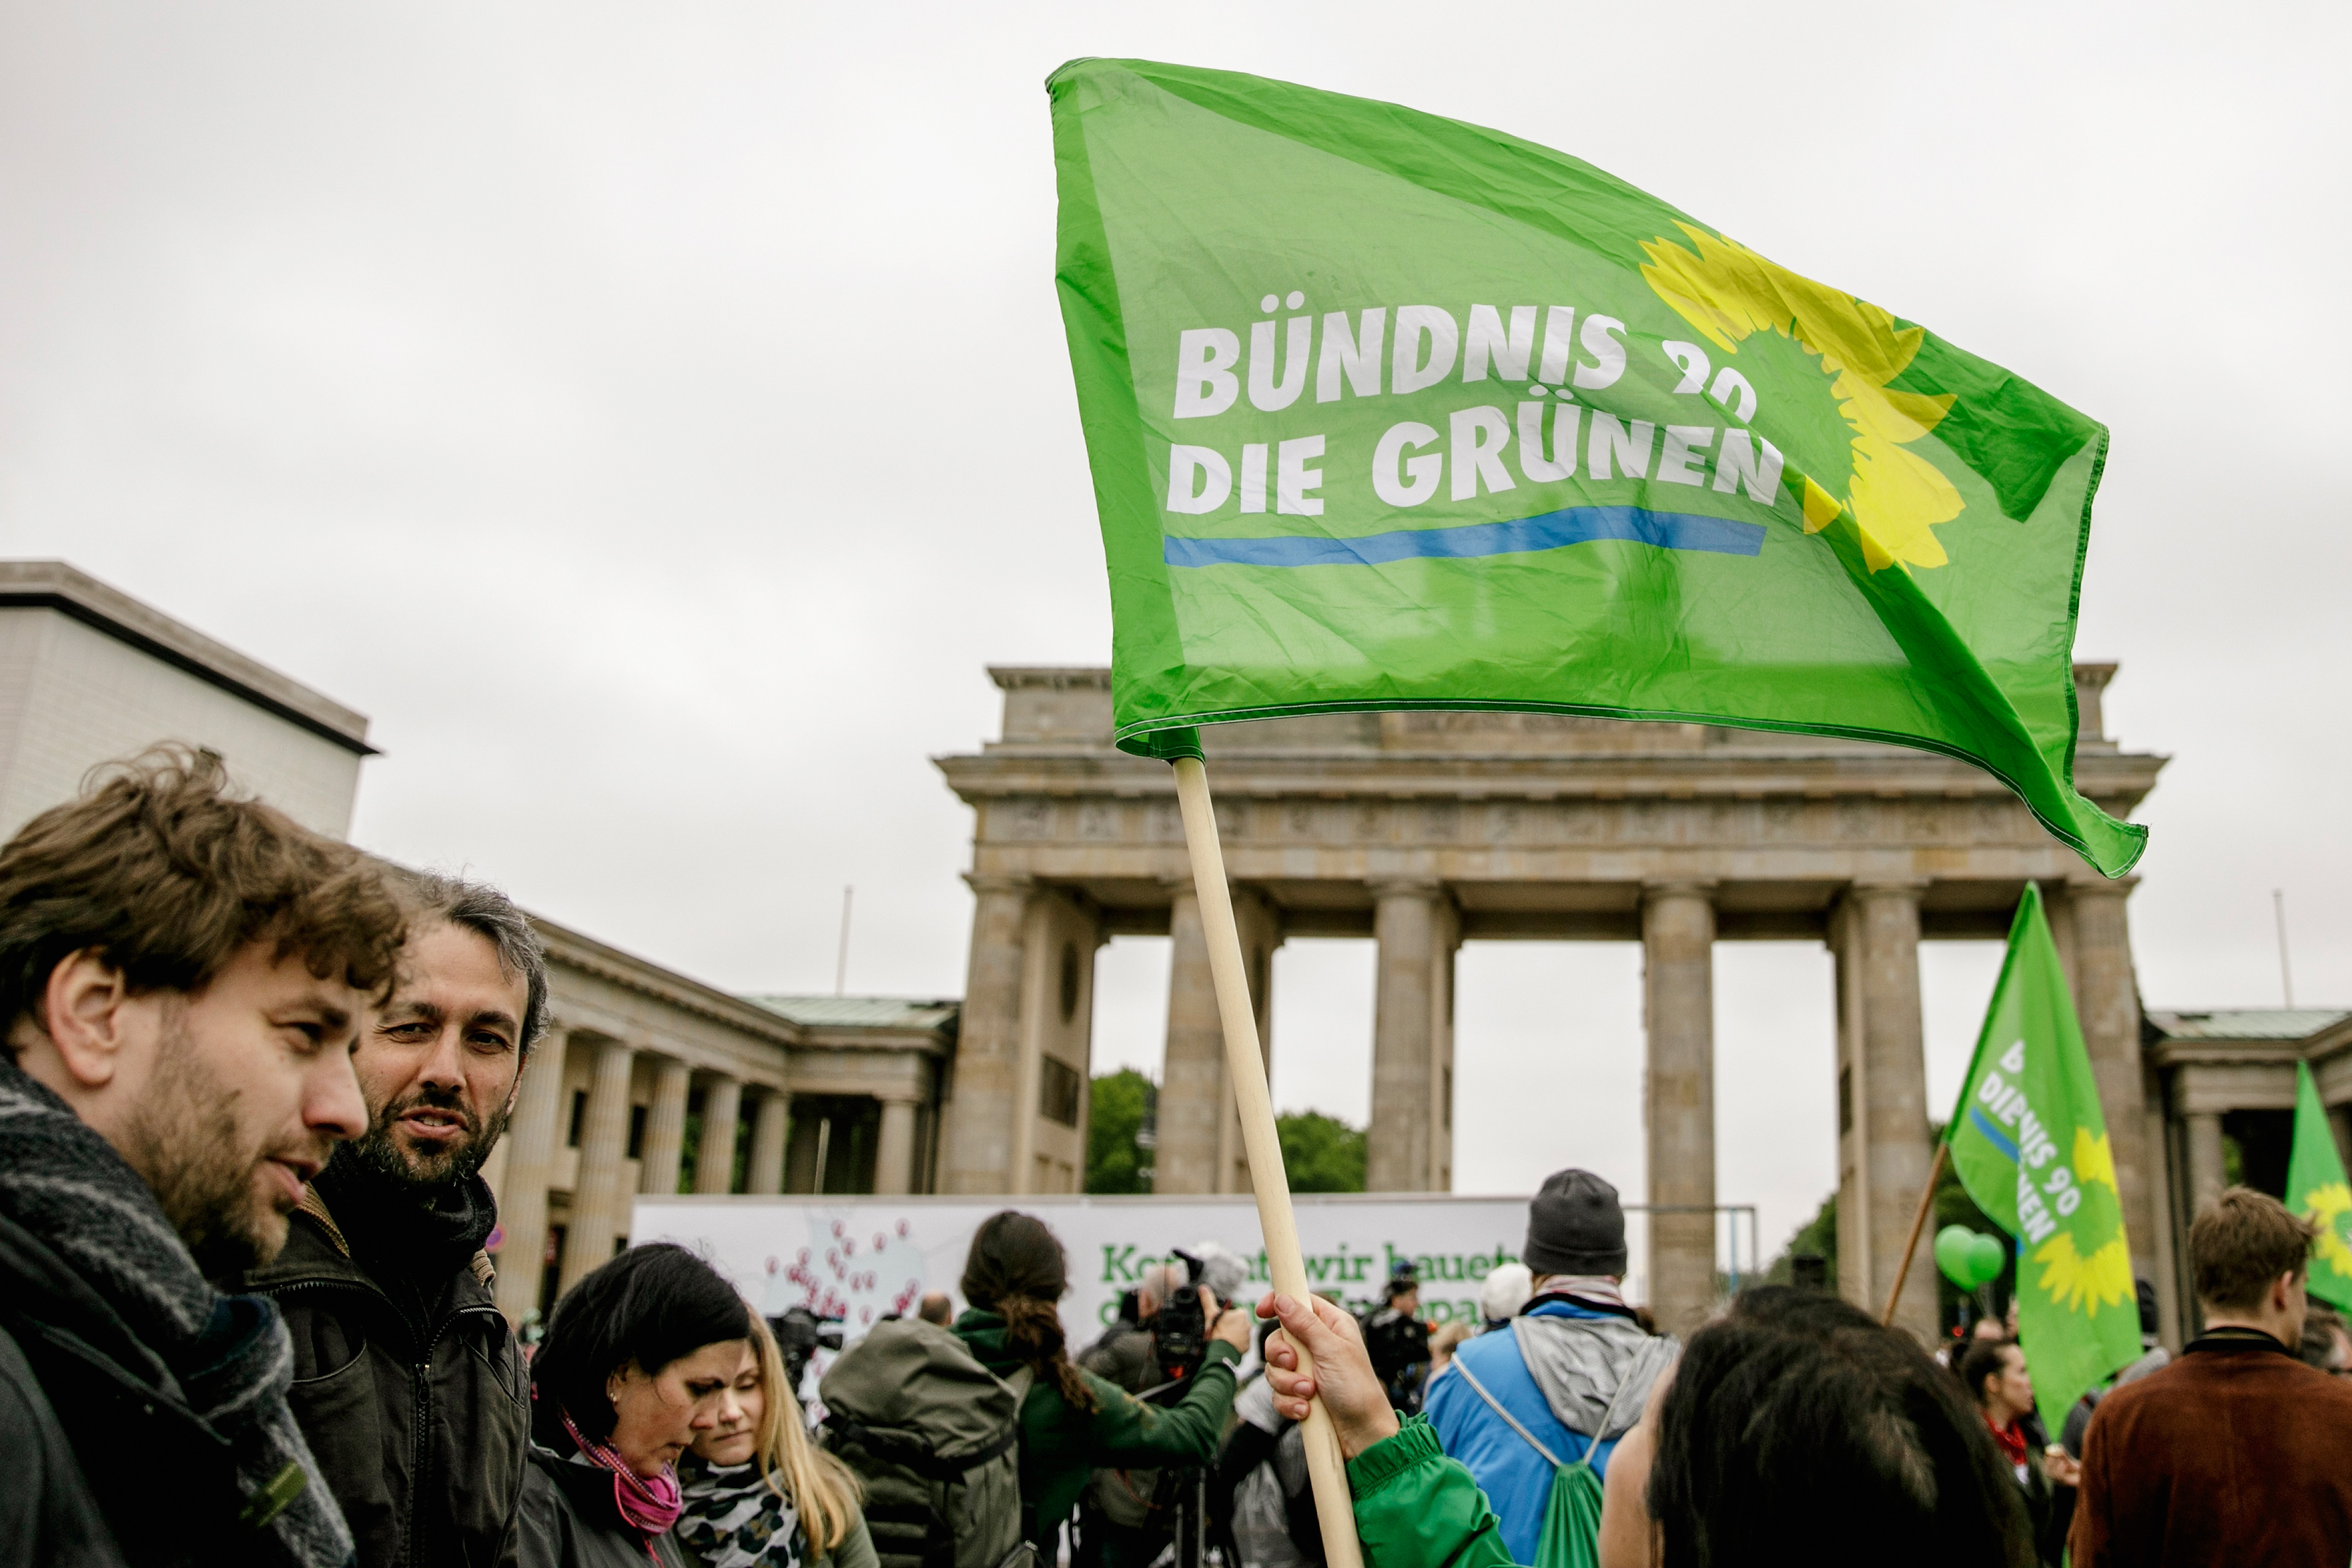 A supporter of the German Greens Party in the European Parliamentary elections waves a flag at an election campaign event on April 29, 2019, in Berlin, Germany.